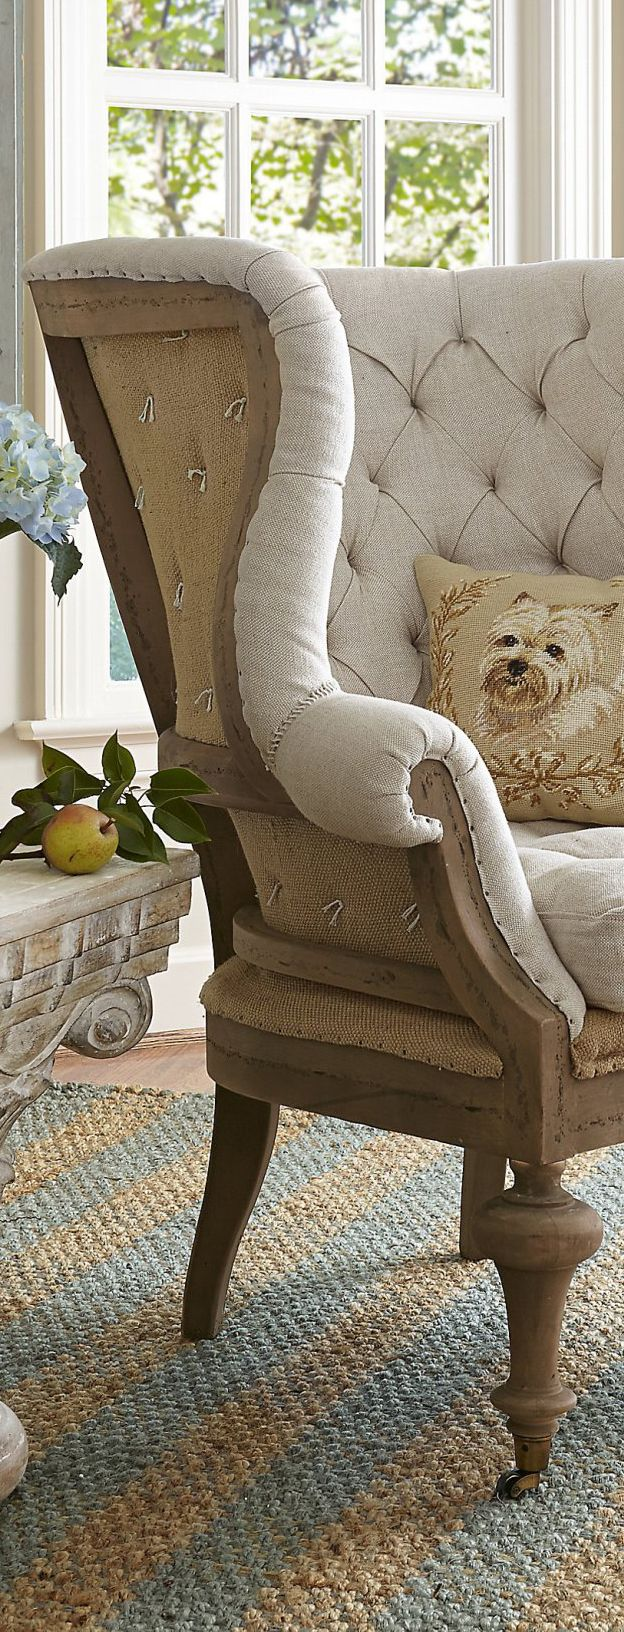 Soft Surroundings Has A Gorgeous Collection Of Home Bedding, Luxury Linens,  Divine French Inspired Furniture, And Incredibly Soft Womenu0027s Clothing.